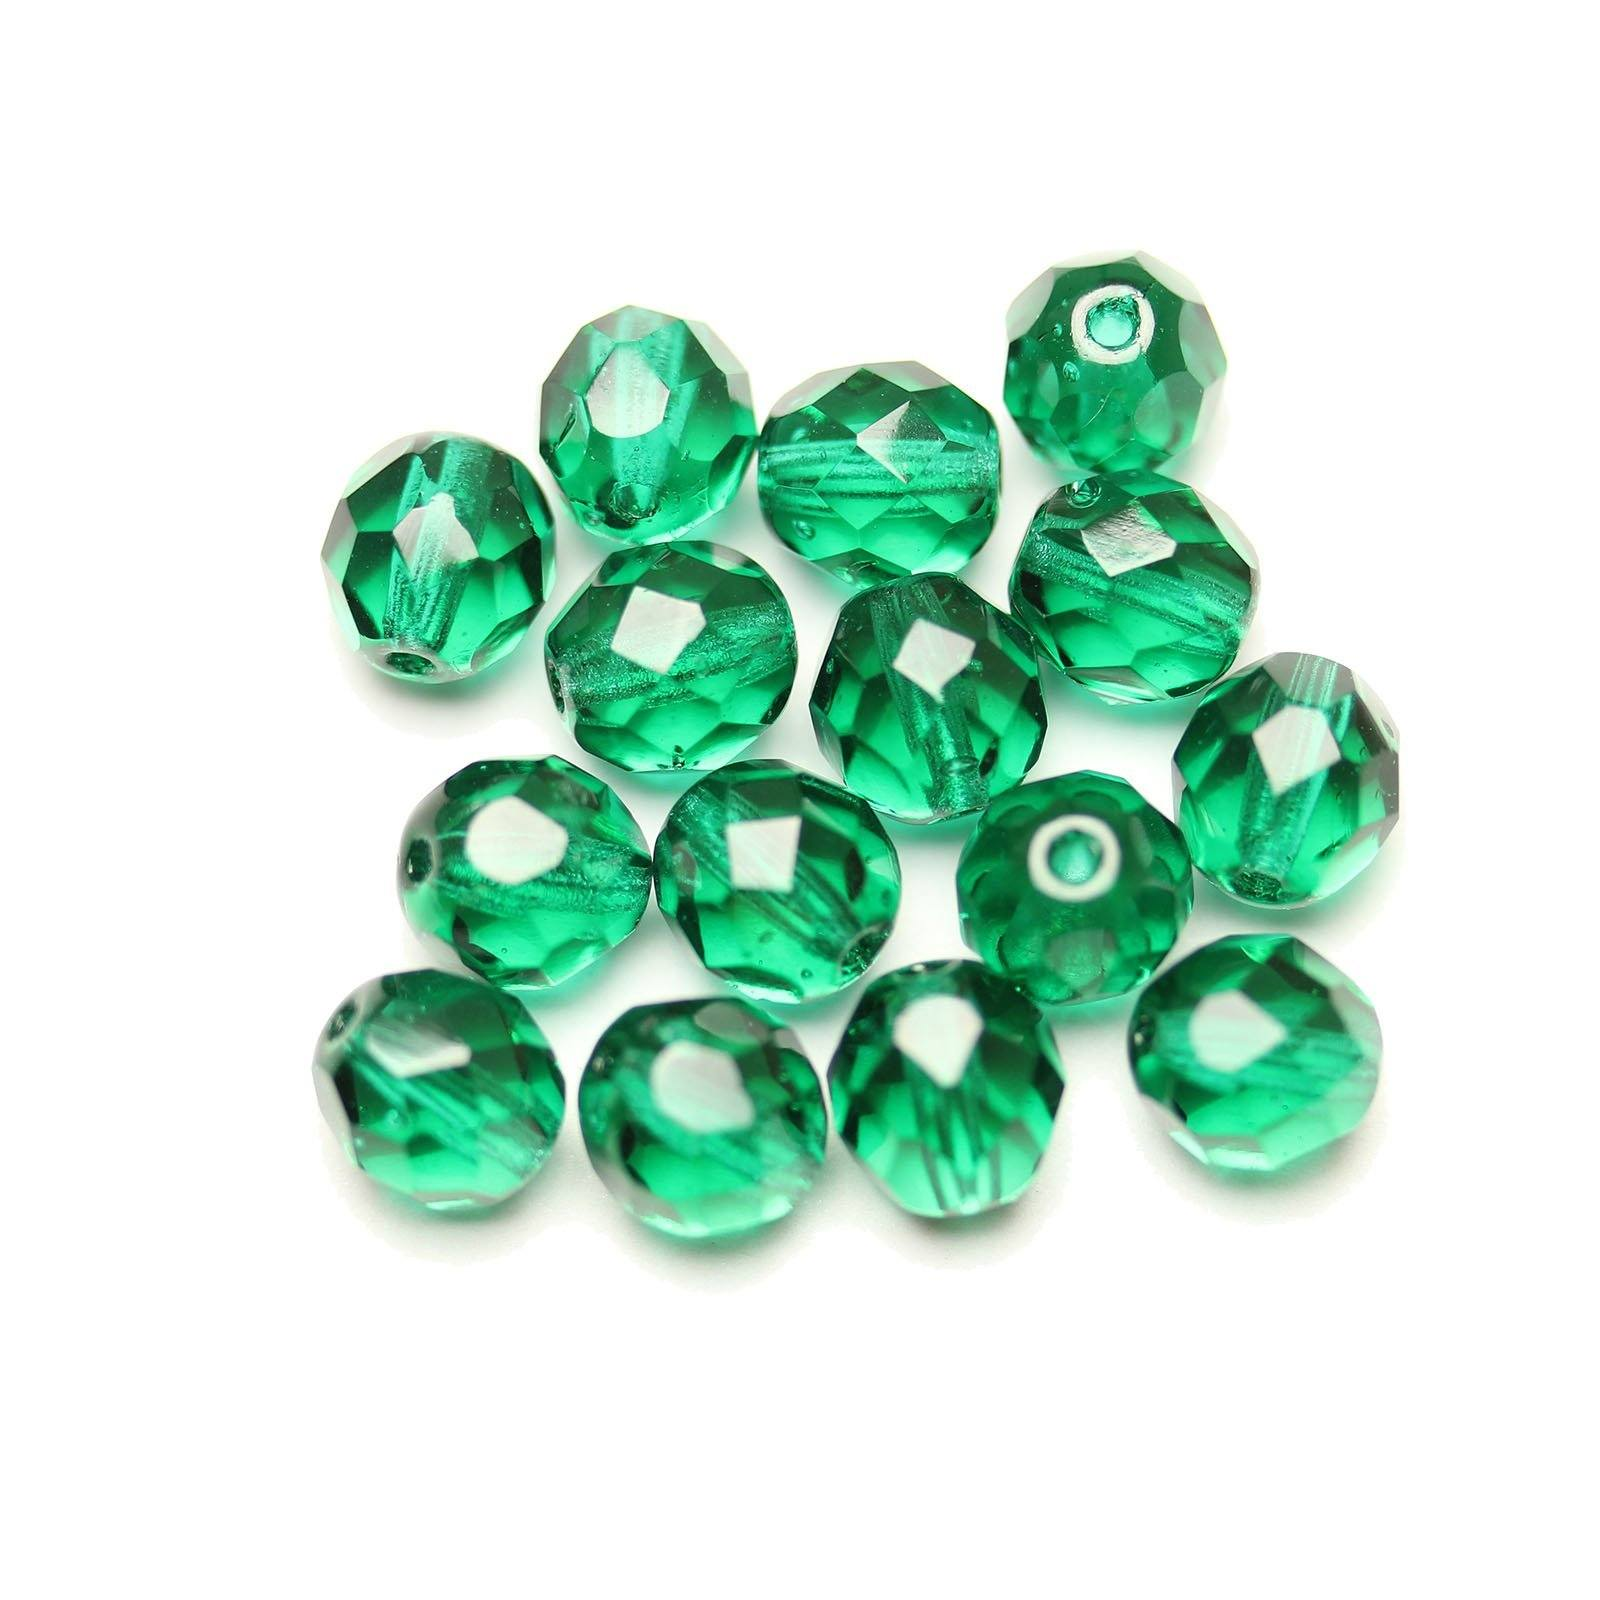 25 8mm Round Faceted Fire Polish Czech Glass Beads Emerald Green AB